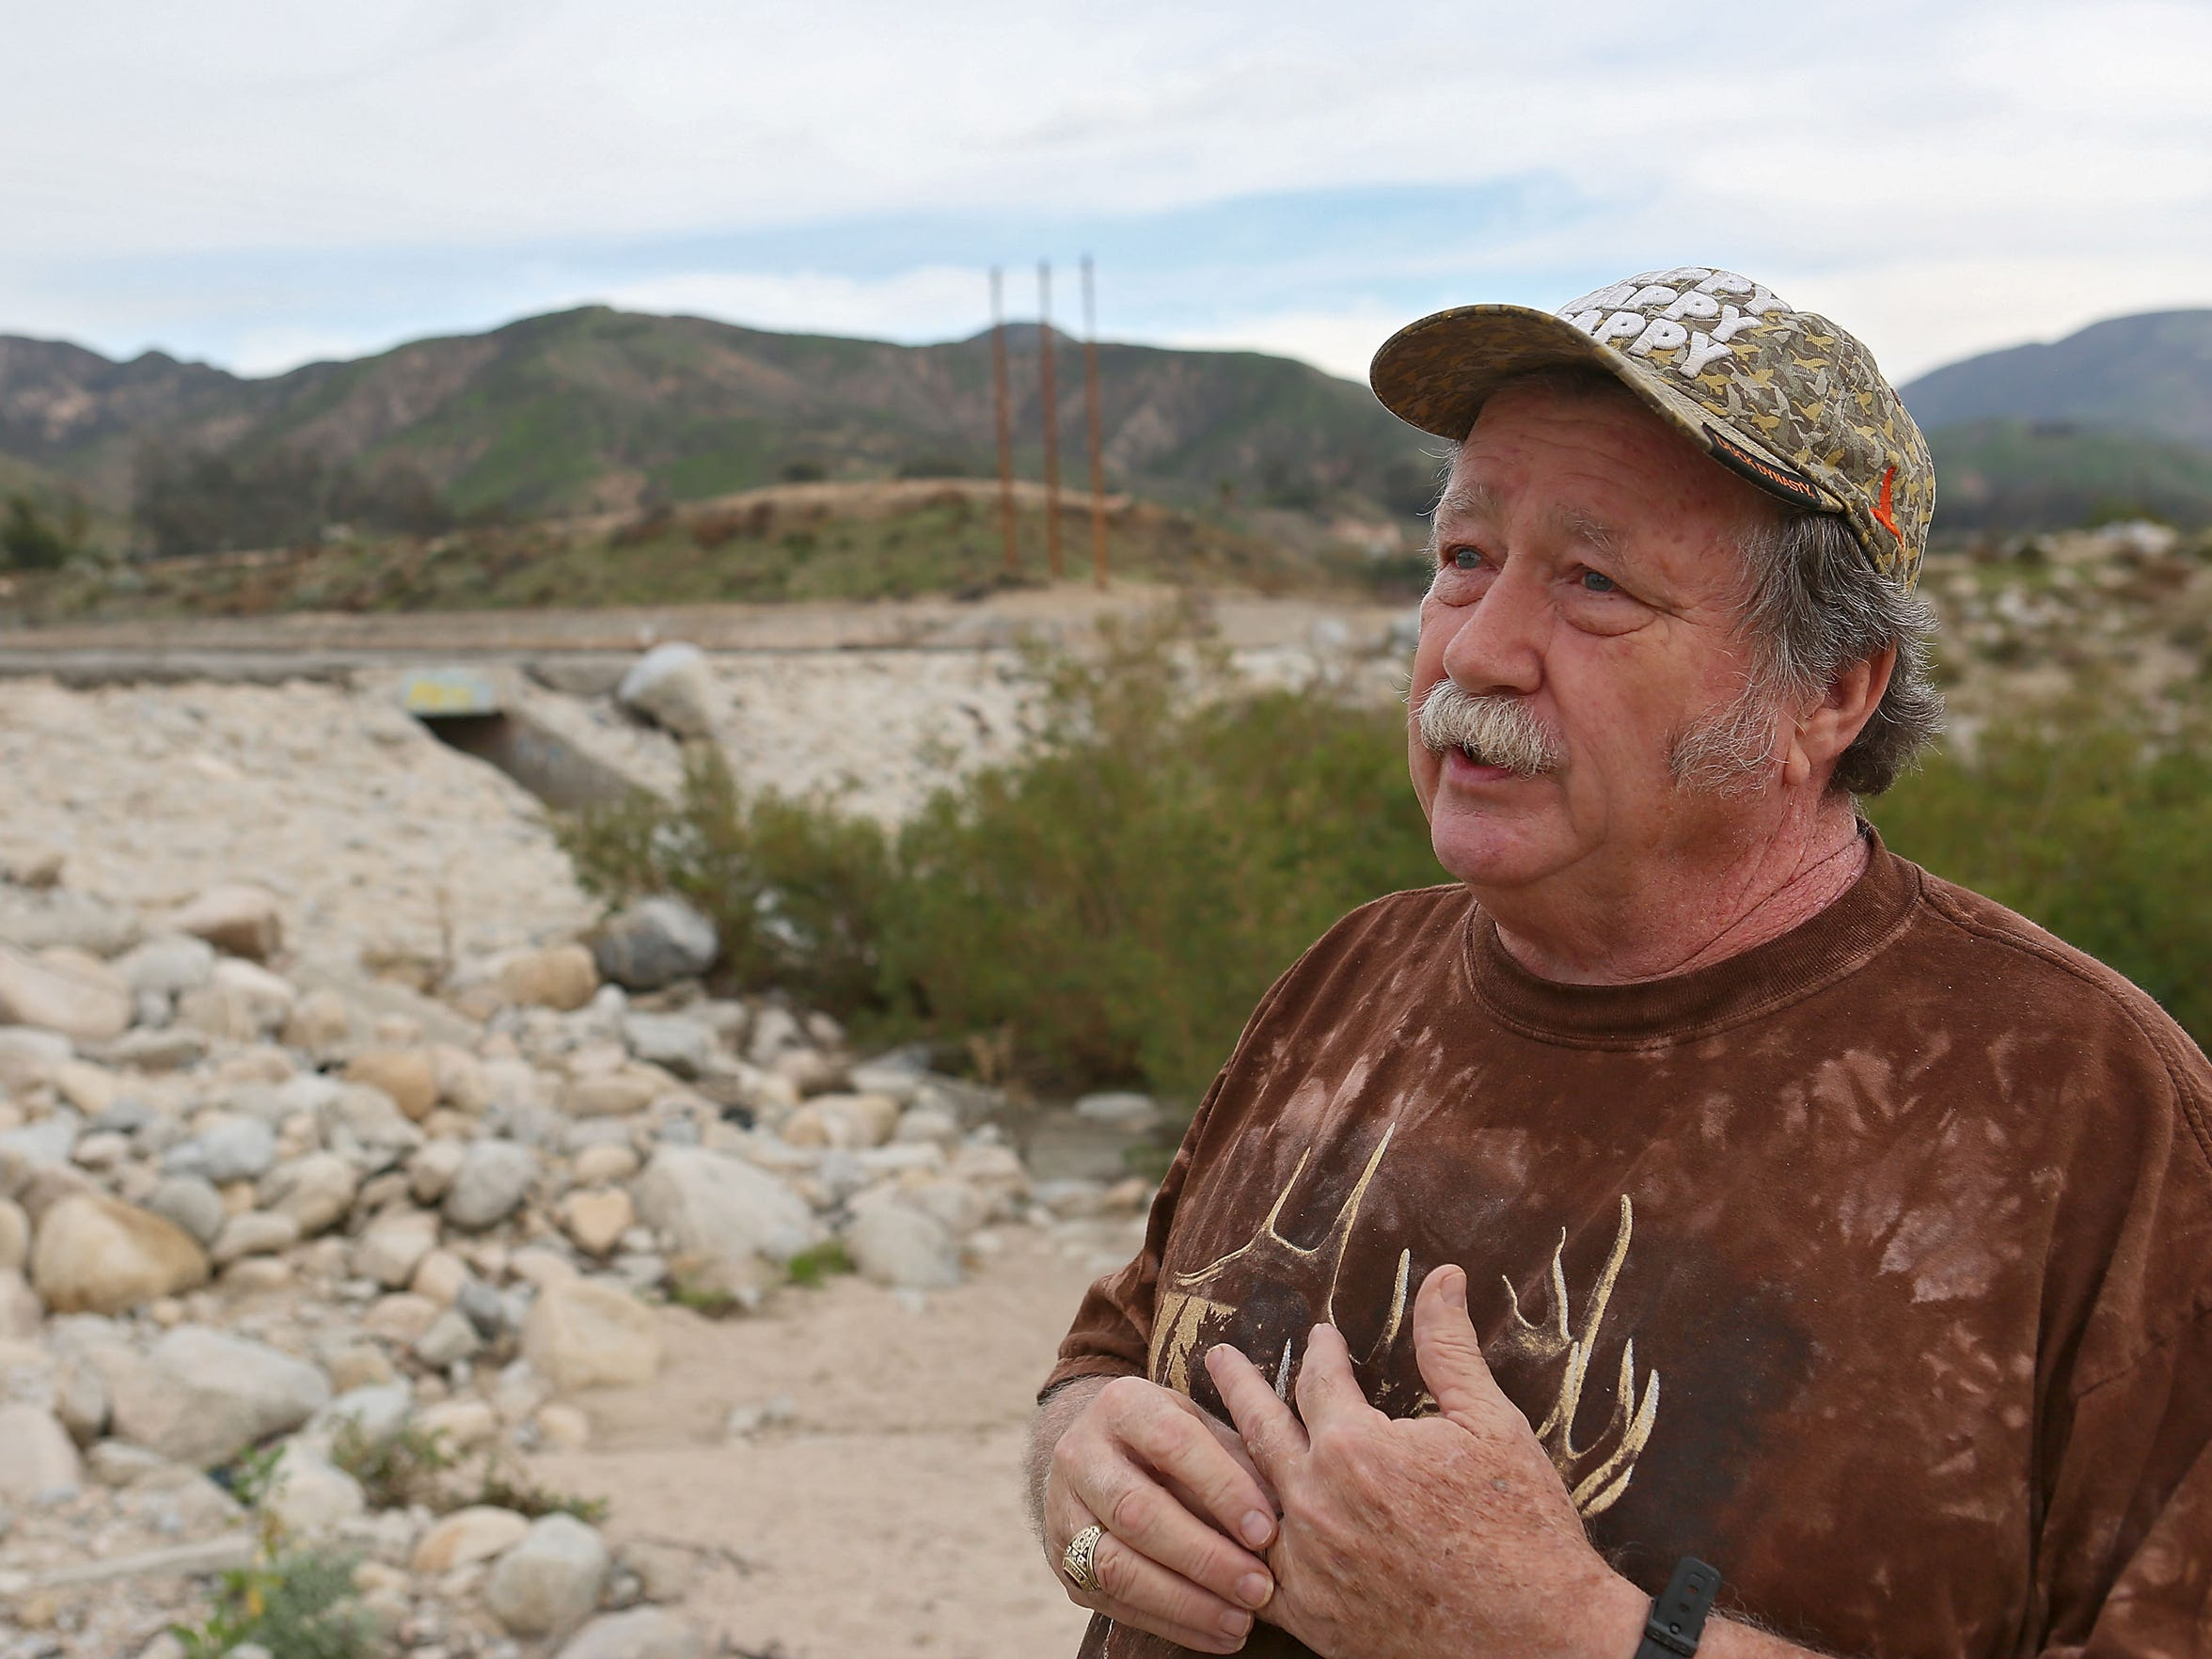 Retired Forest Service biologist Steve Loe voices concerns about Nestle's use of water from the San Bernardino National Forest.